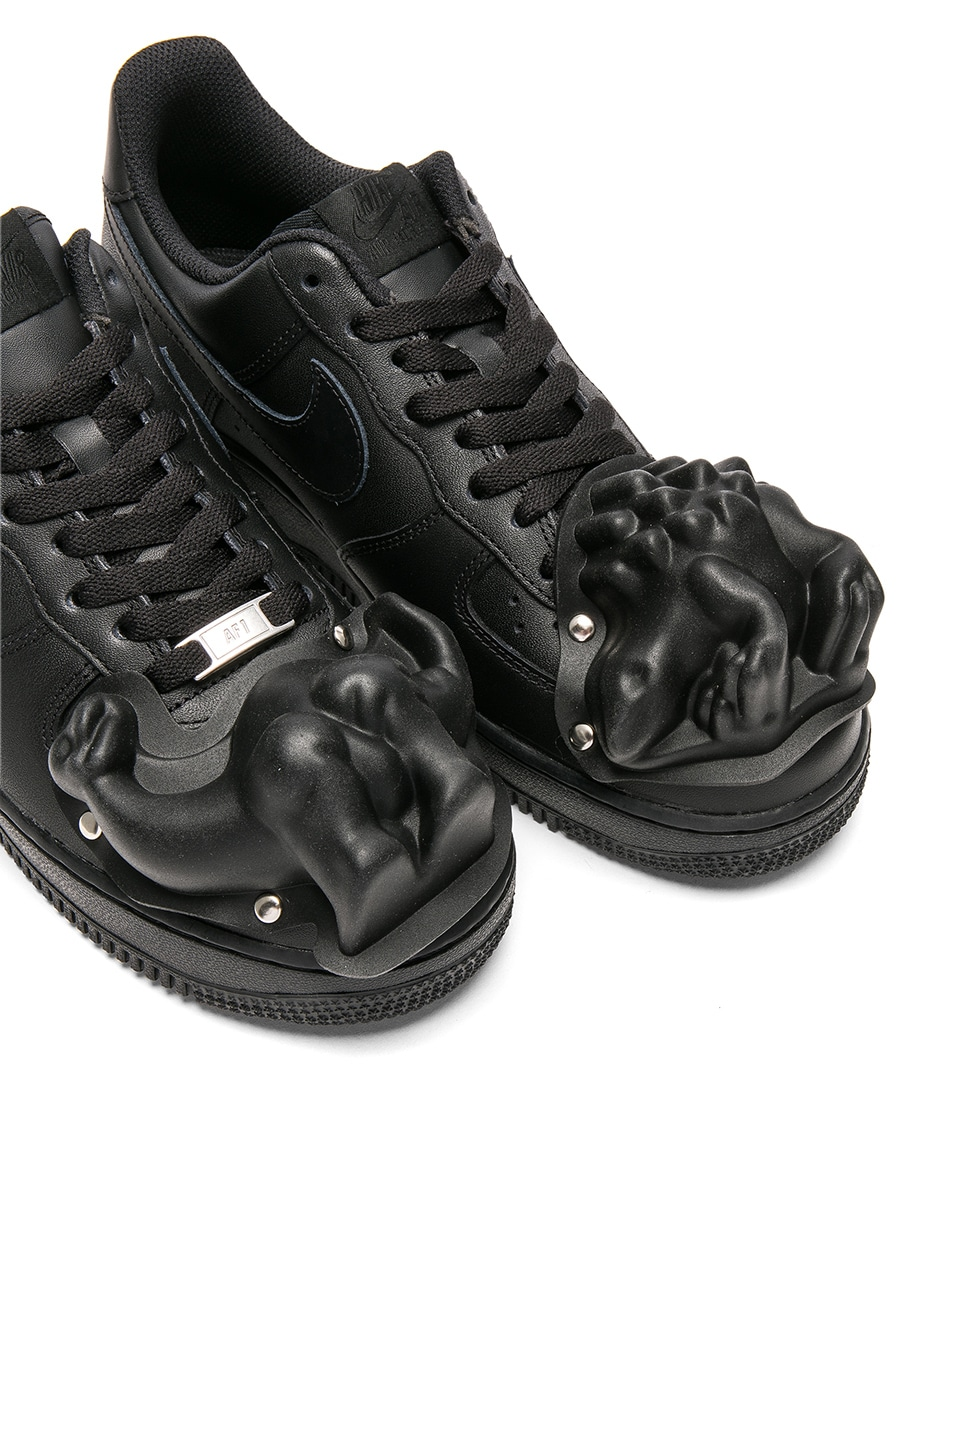 separation shoes c810e e7f83 Image 7 of Comme Des Garcons Homme Plus Nike Air Force 1 CDG Custom in Black